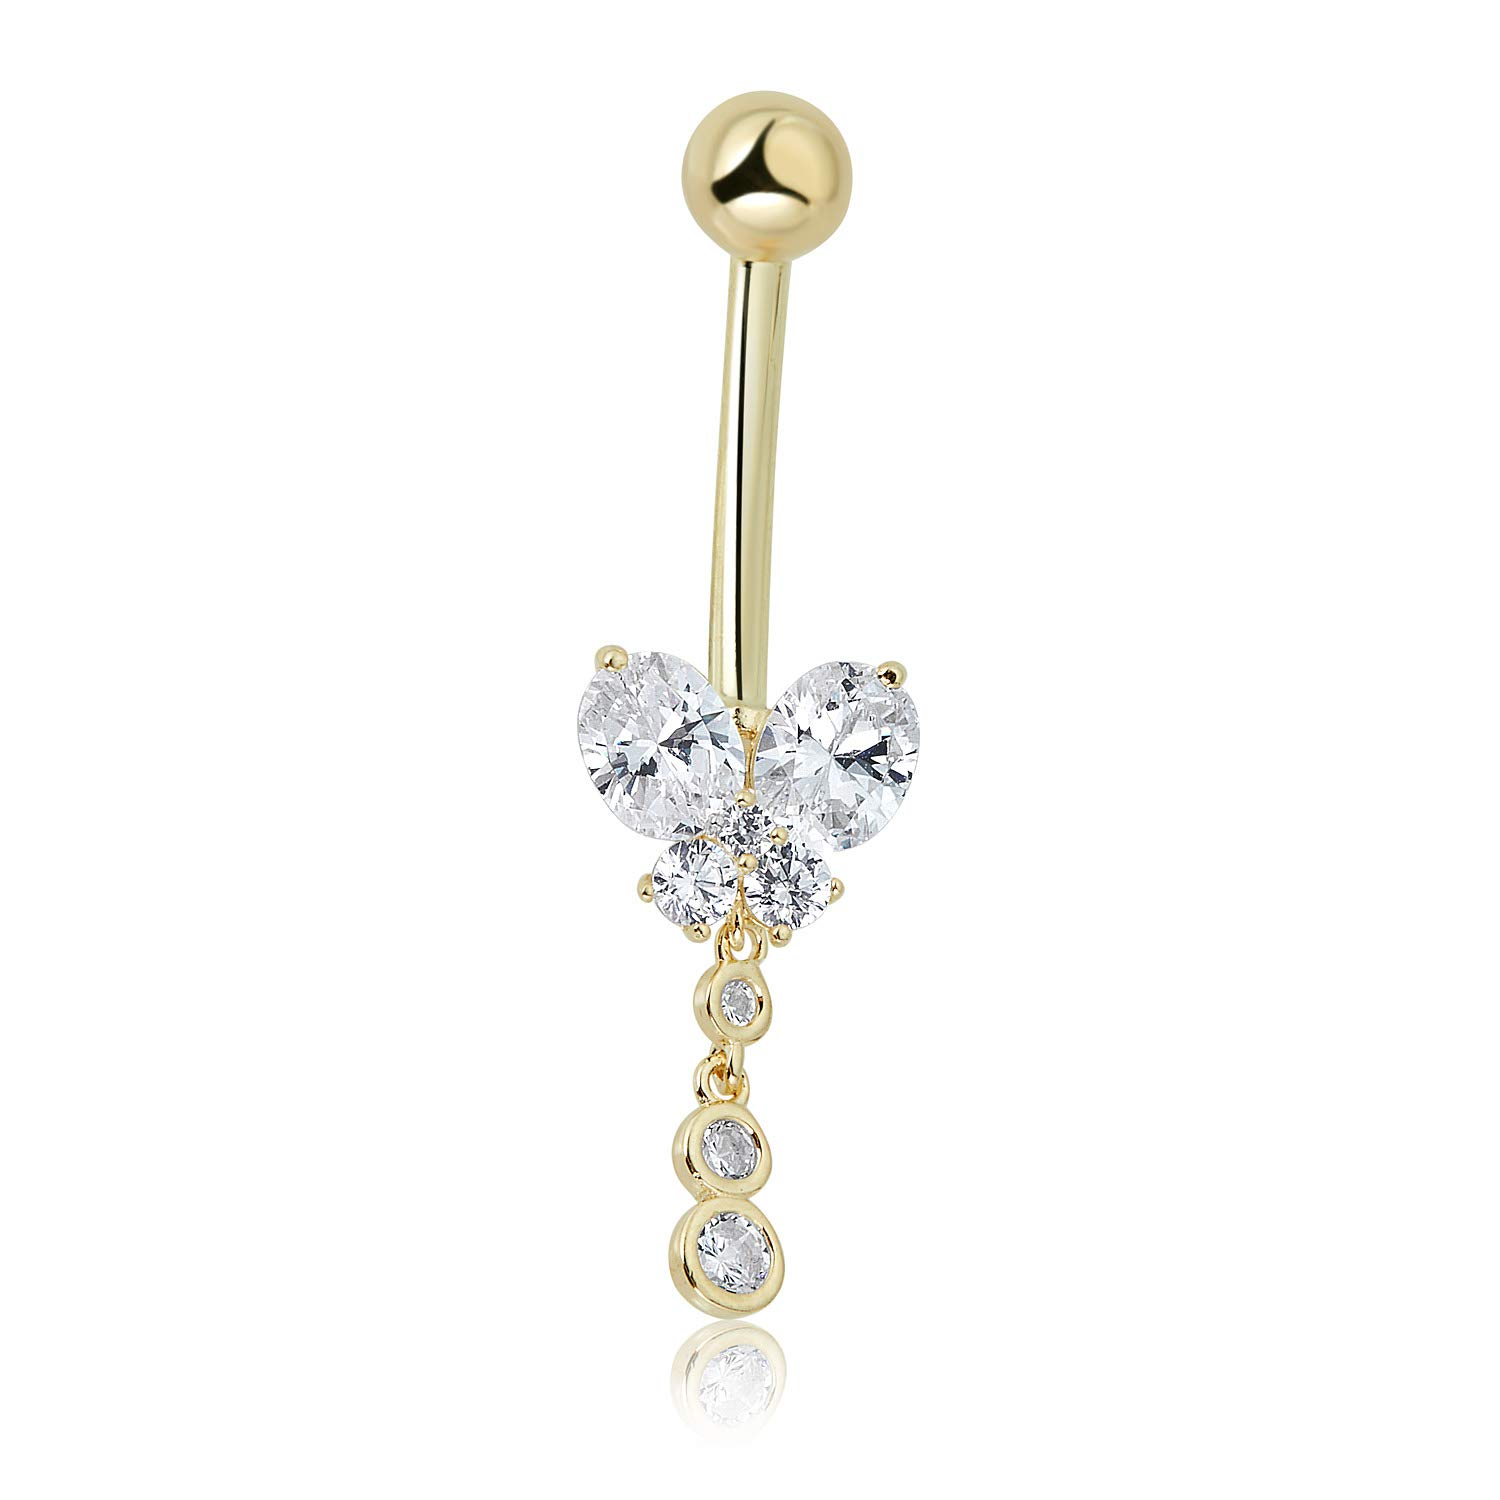 10K Yellow Gold 4-stone Simulated Diamond CZ Dangling Butterfly Belly Button Ring Body Jewelry - 014 Gauge by AVORA